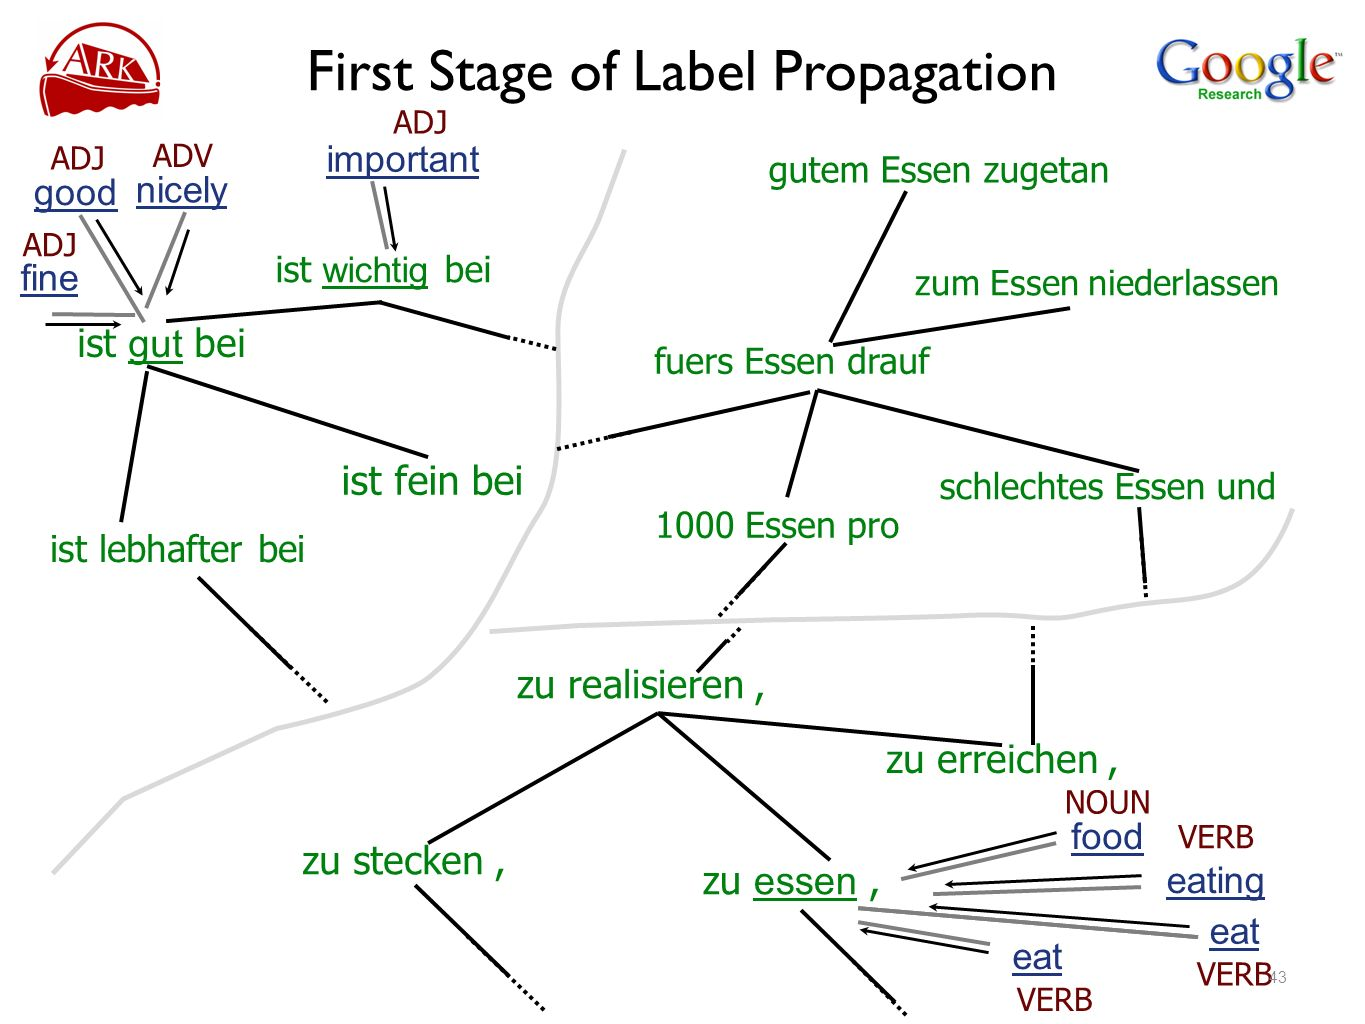 First Stage of Label Propagation